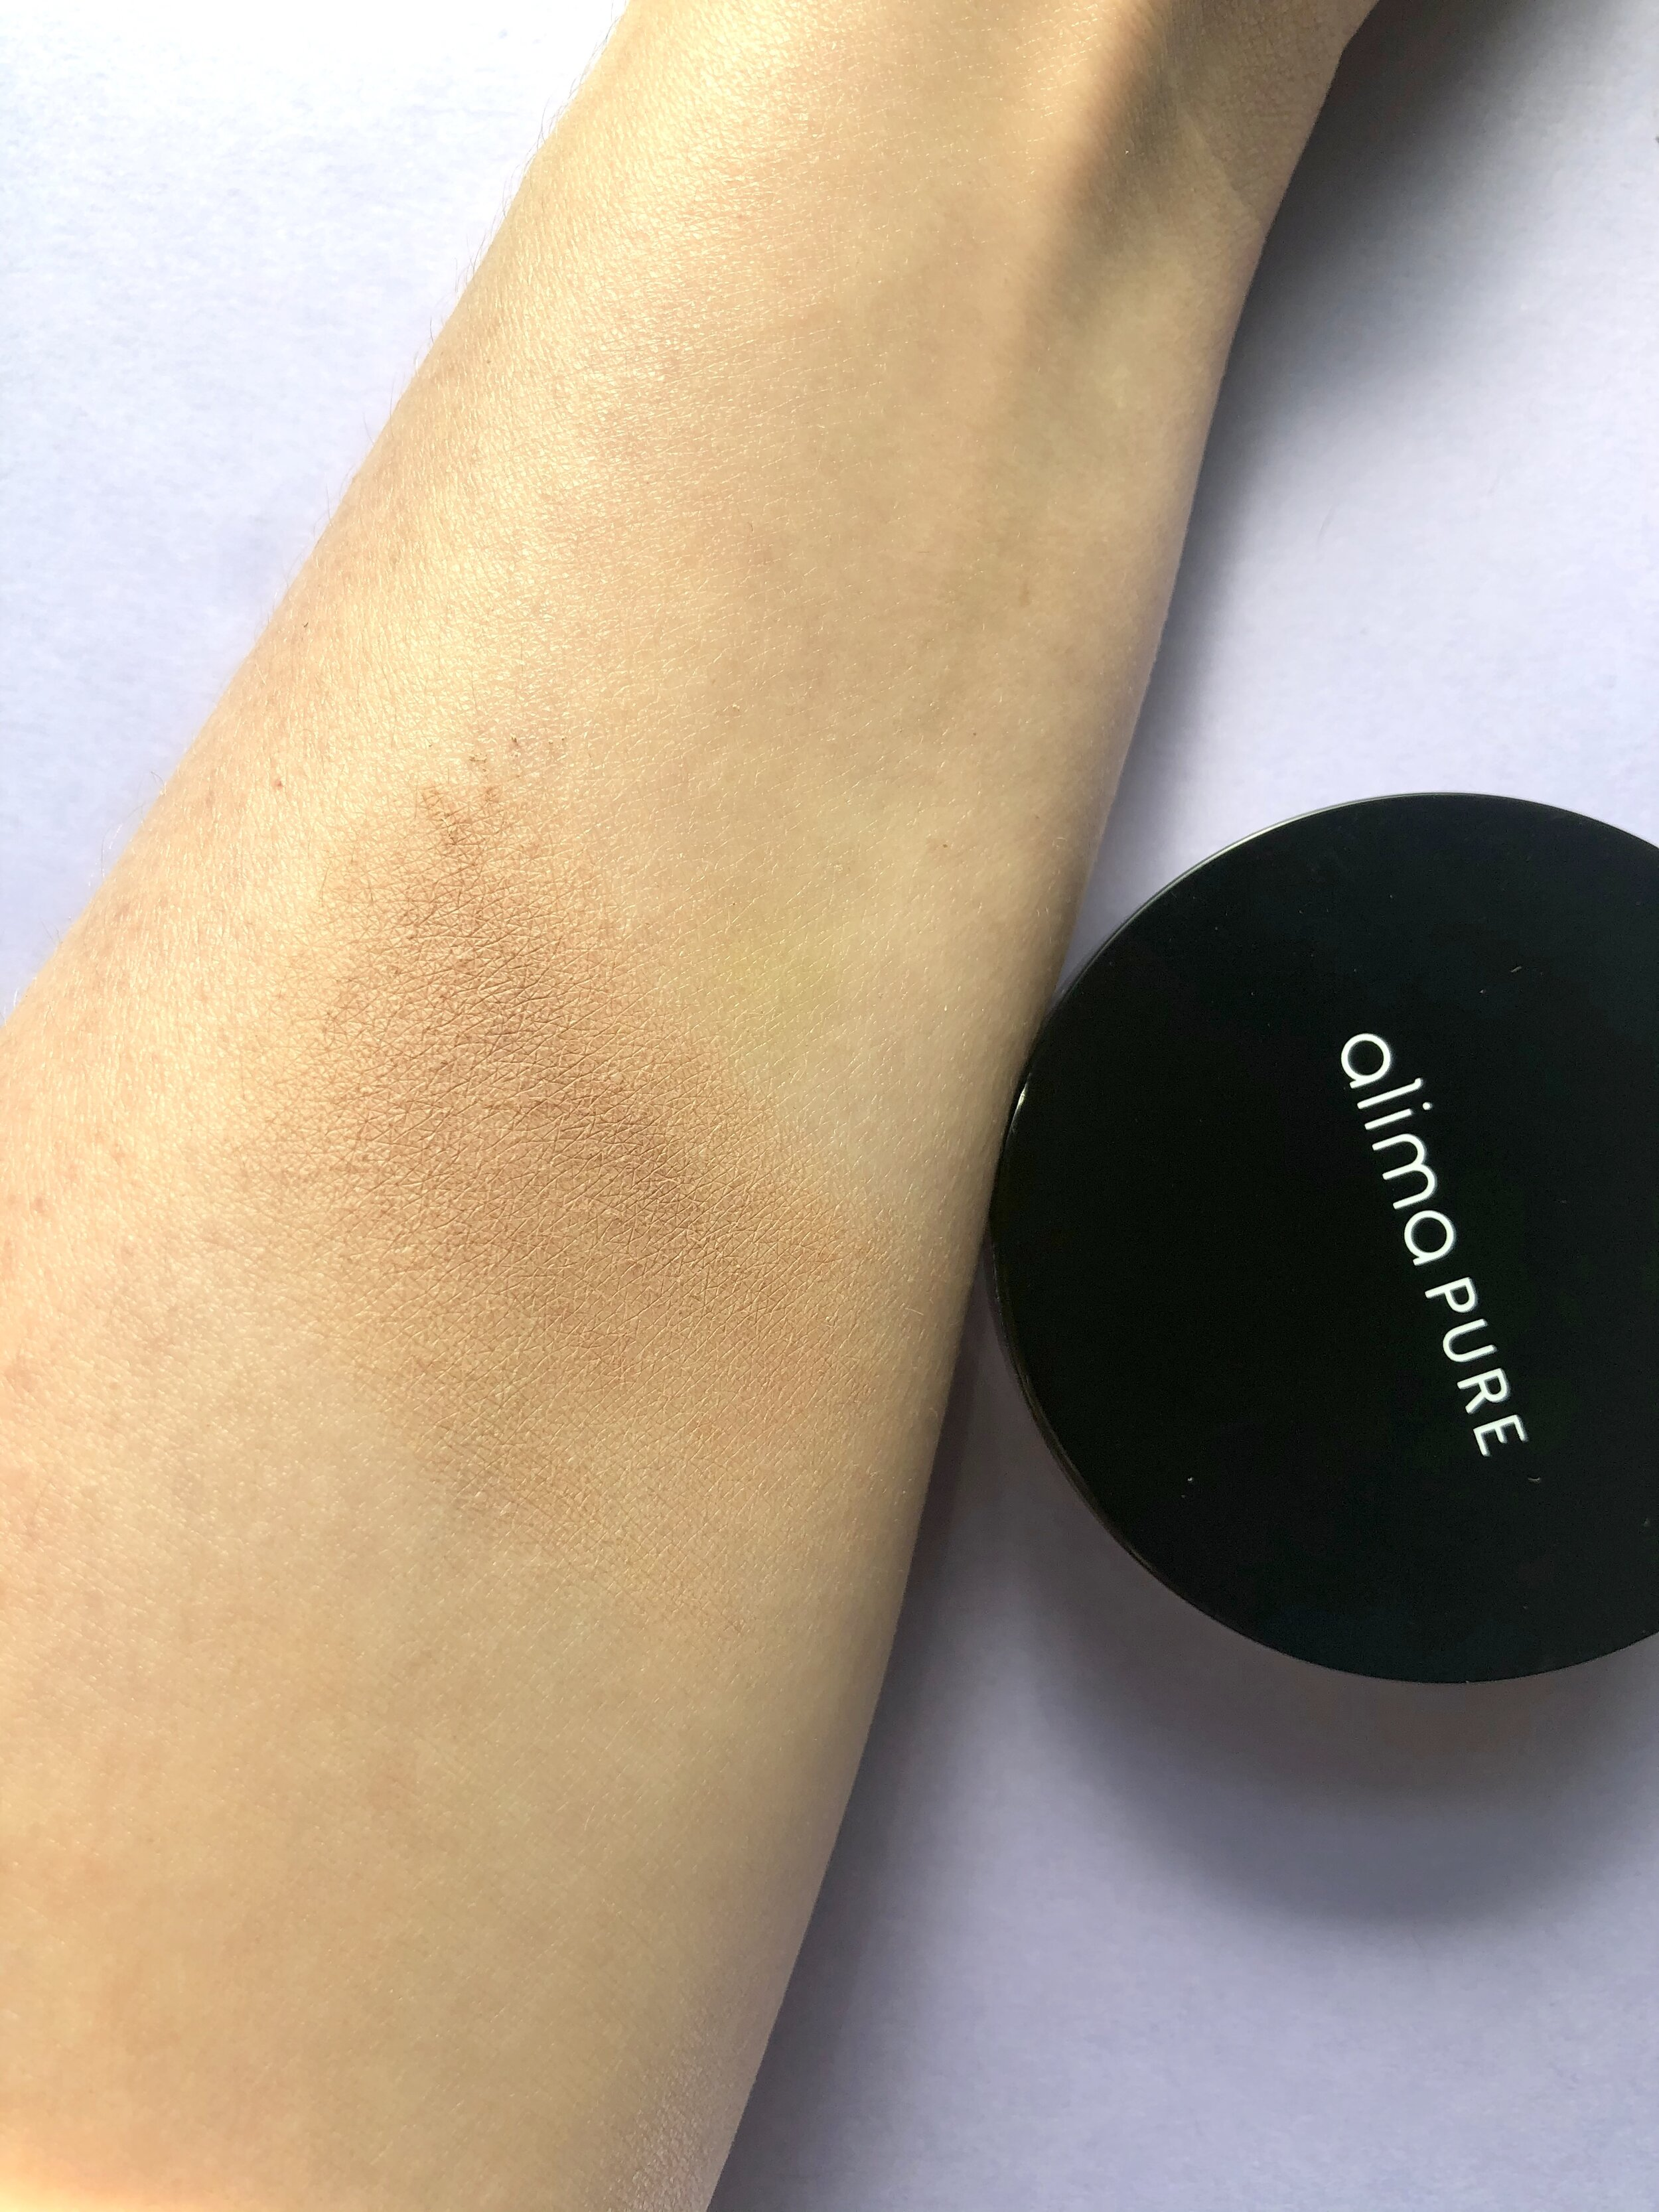 Honest Review Of The Alima Pure Satin Matte Foundation 2020 Update Thestyleshaker Scorecard The Styleshaker A Guide To Clean Beauty Skincare More Honest Reviews